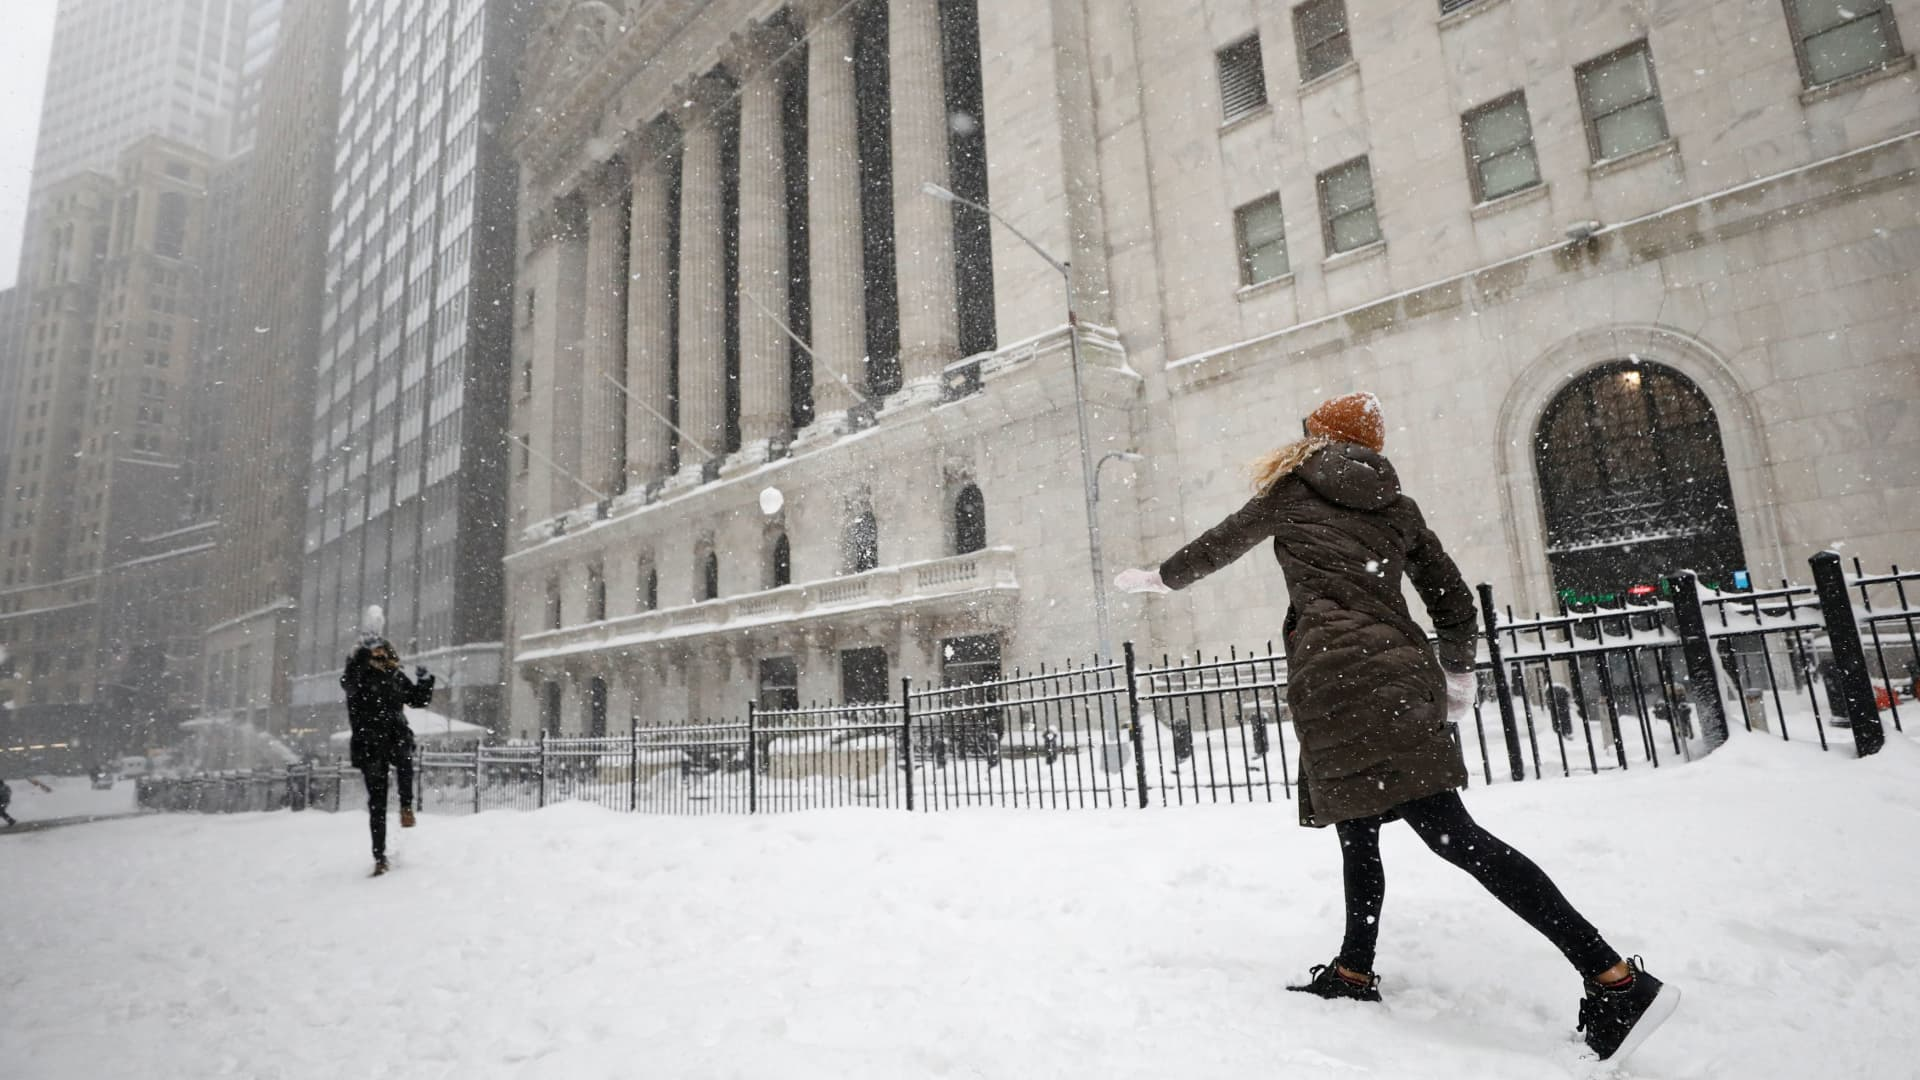 People have a snowball fight outside the New York Stock Exchange (NYSE) during a snow storm in New York, February 1, 2021.